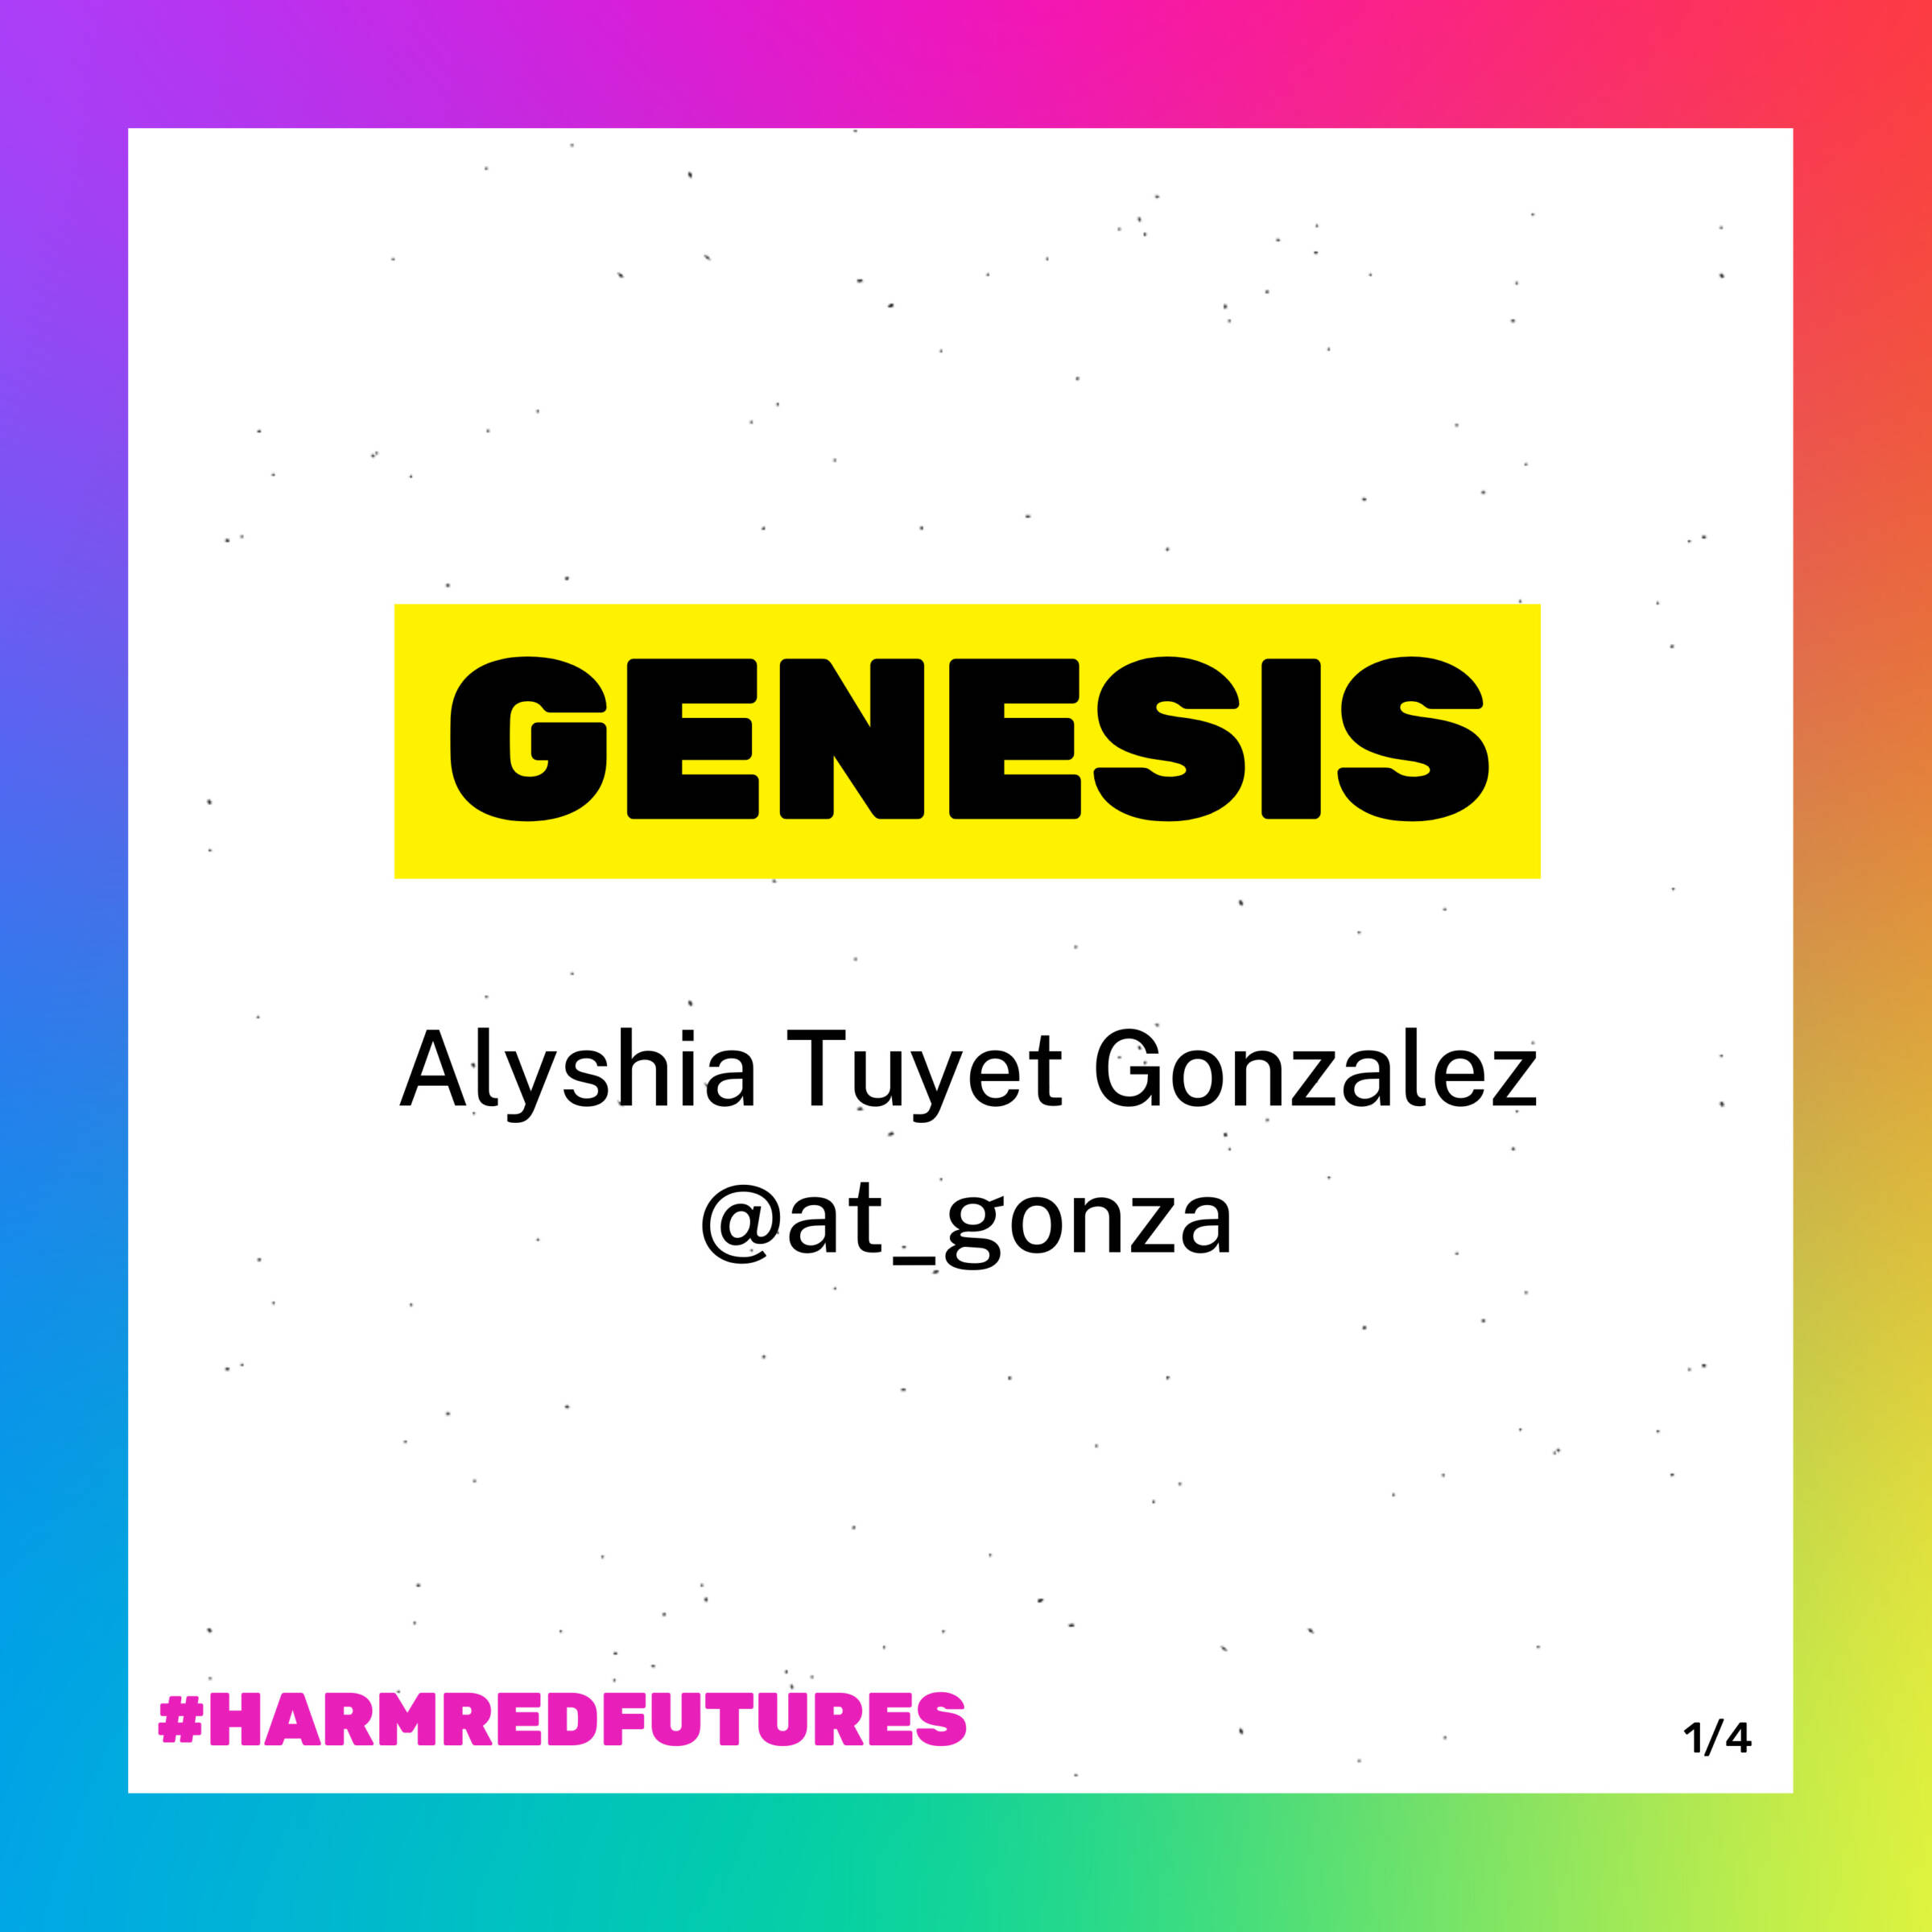 A box with a rainbow background and white foreground. Inside are the words GENESIS, the title of a poem written by Alyshia Tuyet Gonzalez. Her handle is @at_gonza. Hashtag harm red futures.